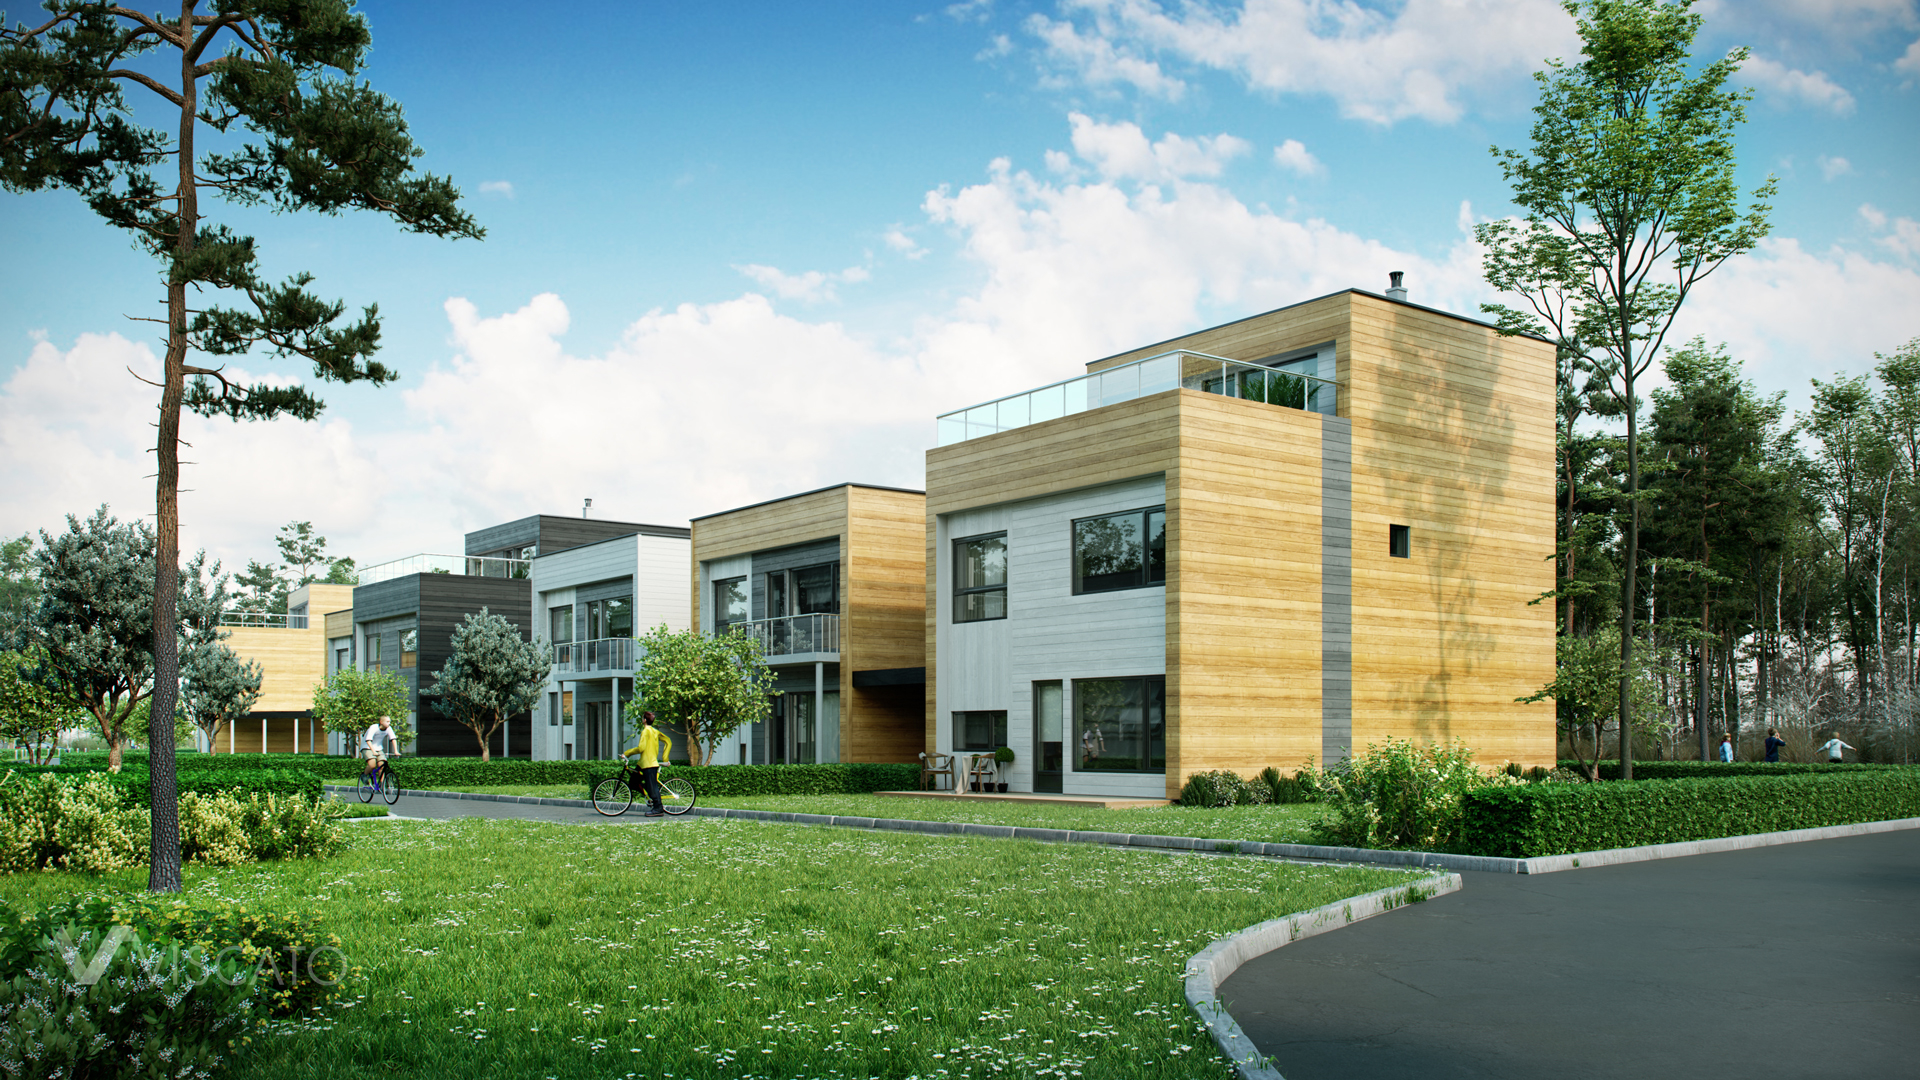 3D renderings of housing estate with wooden facade Viscato